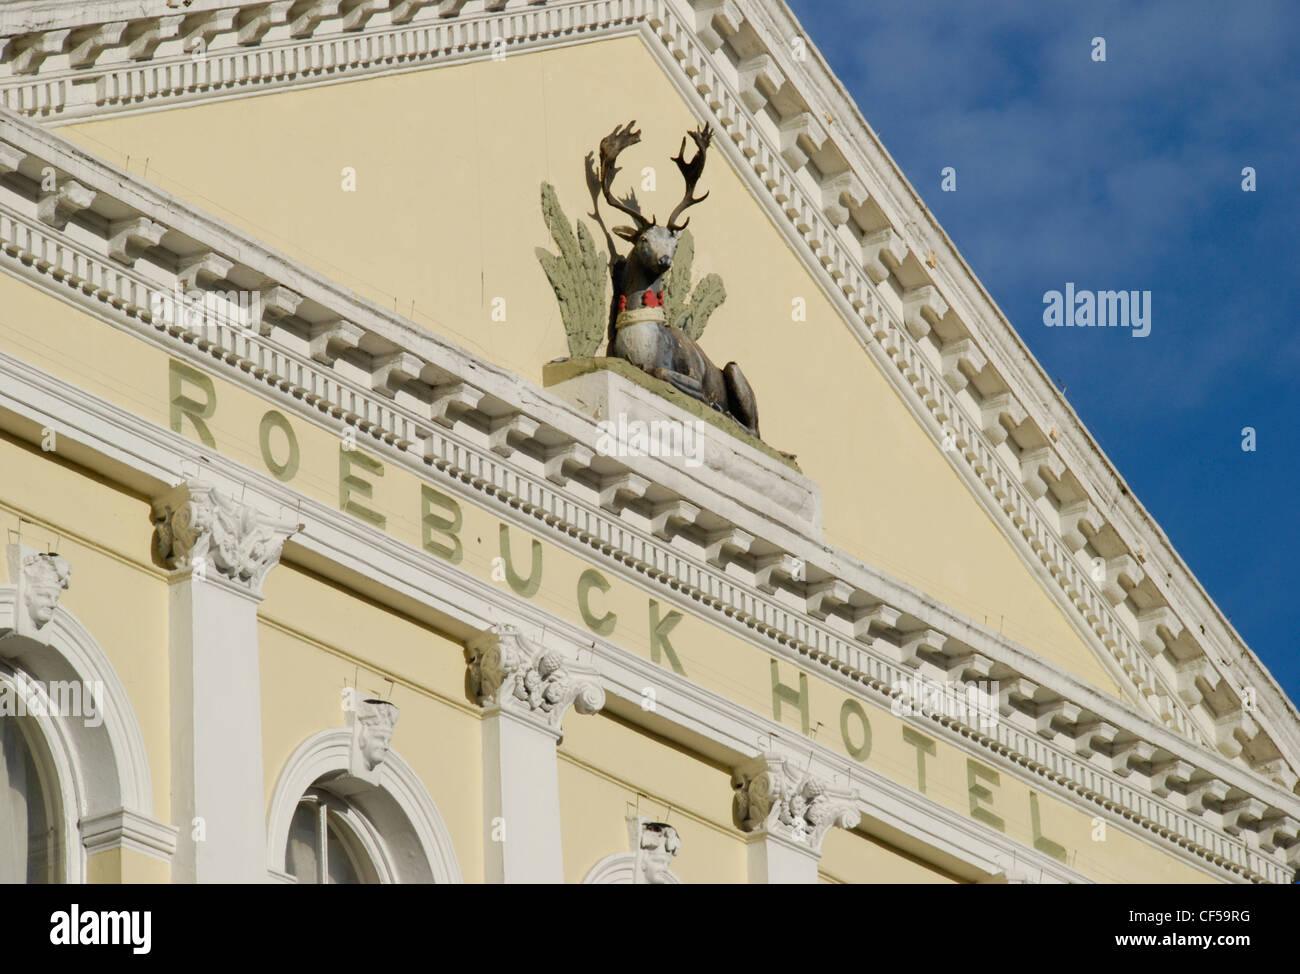 Architectural detail from the front of the Roebuck Hotel in Pond Street. - Stock Image